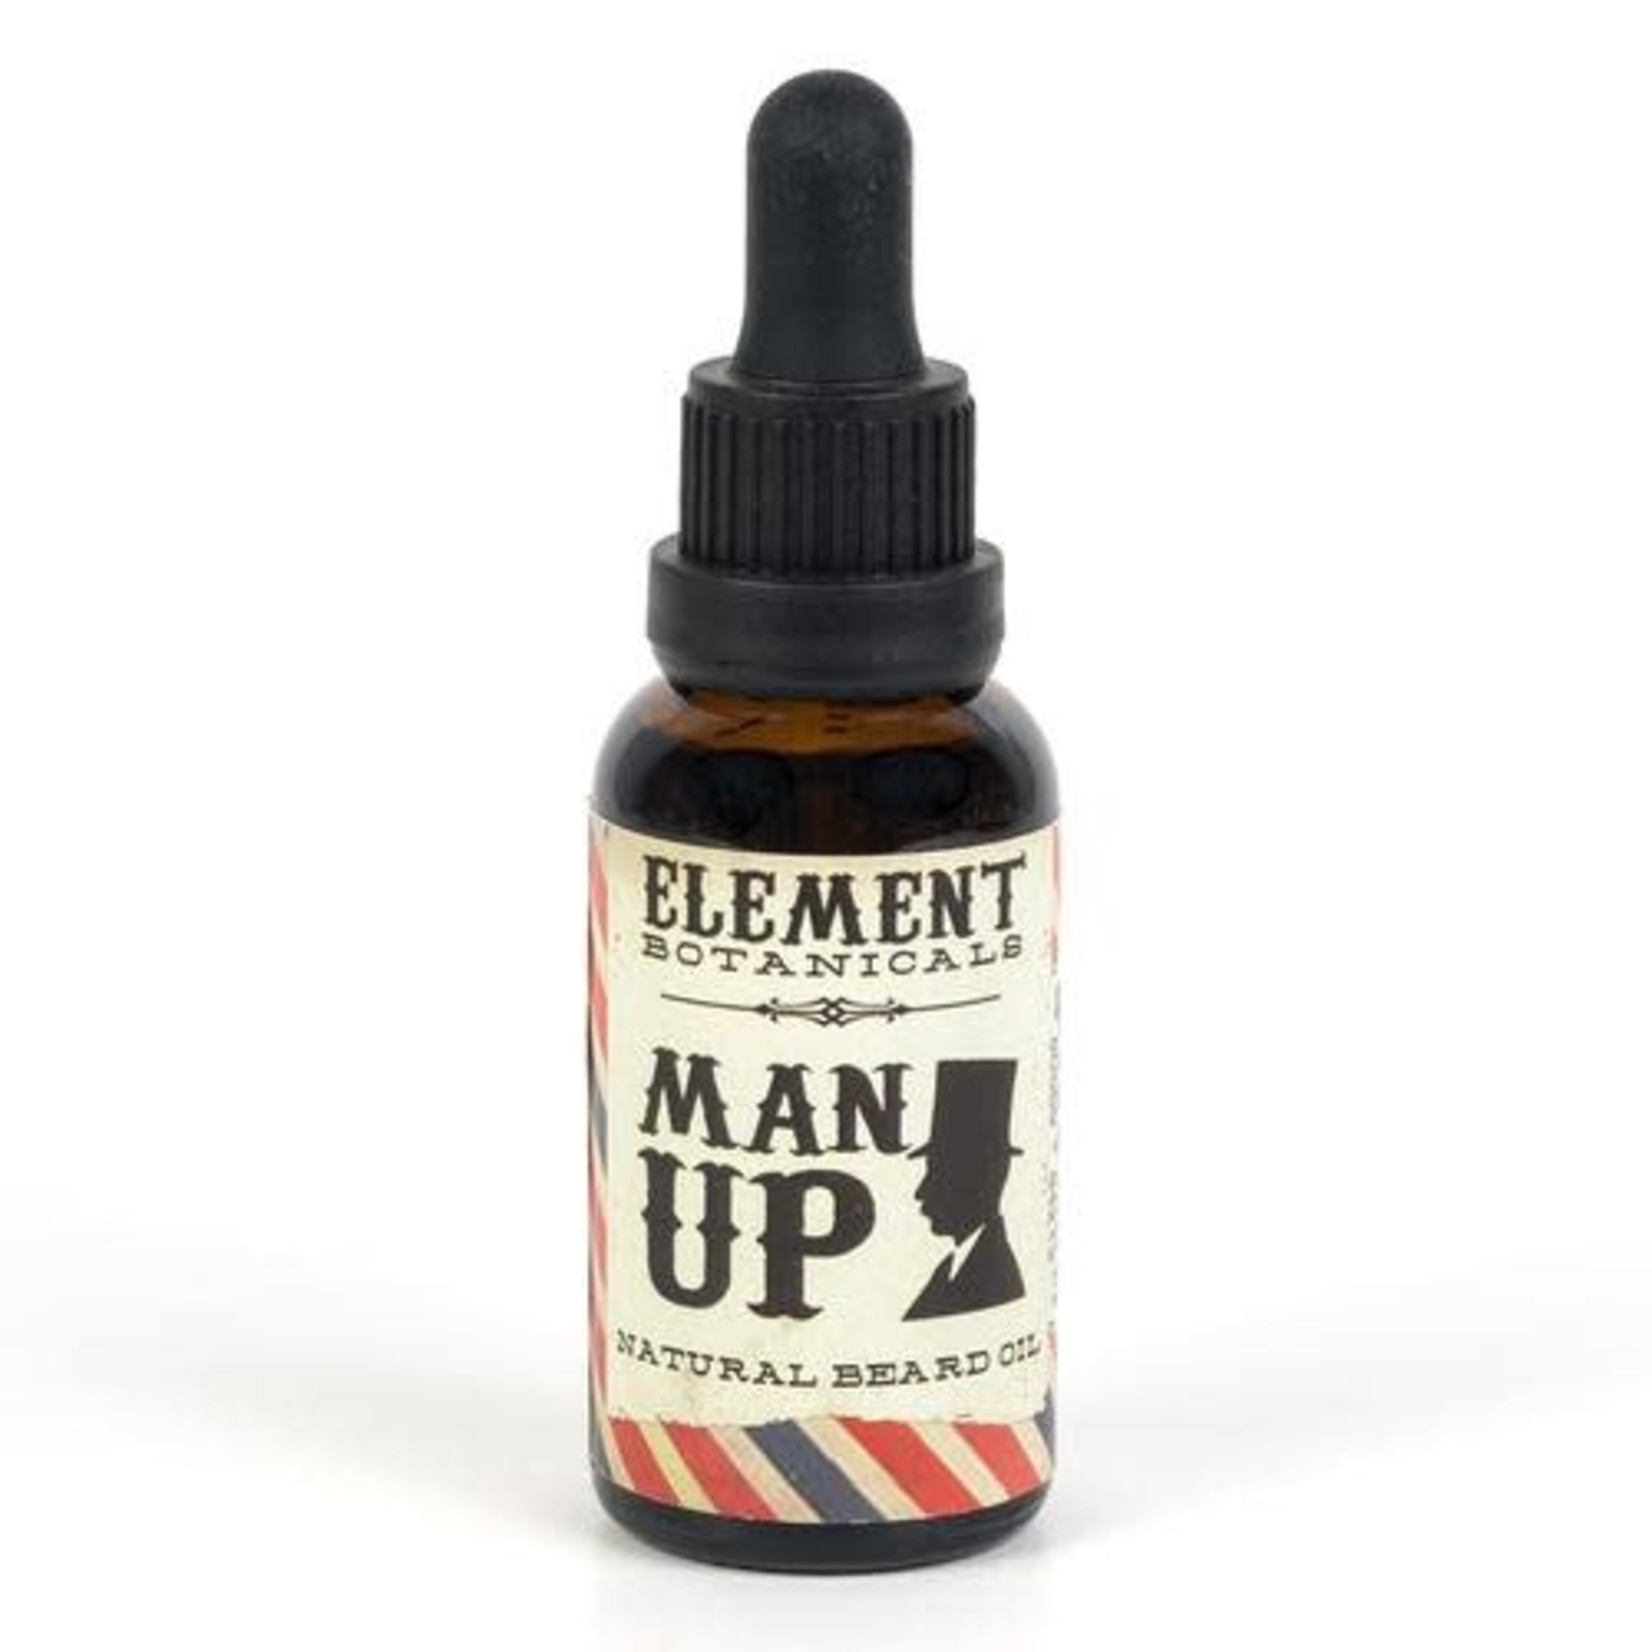 ELEMENT BOTANICALS Man Up Beard + Skin Oil